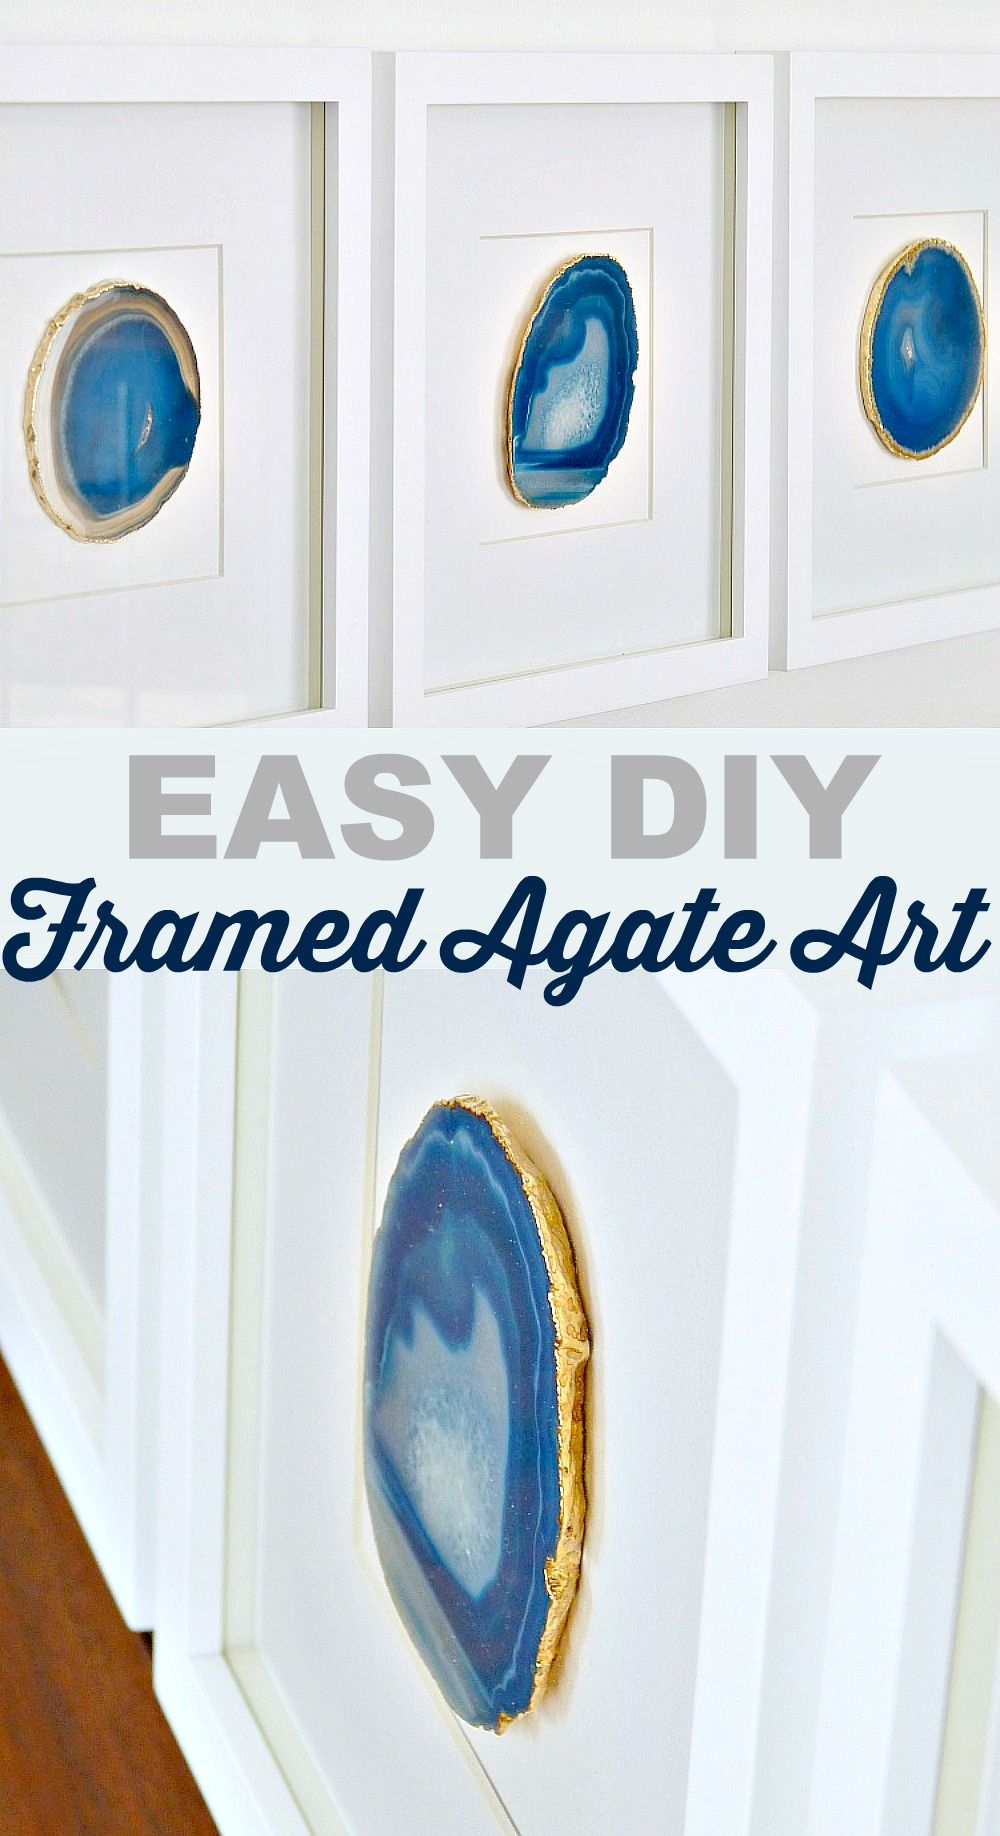 Diy agate art framed blue agate slices agate diy frame and diy art